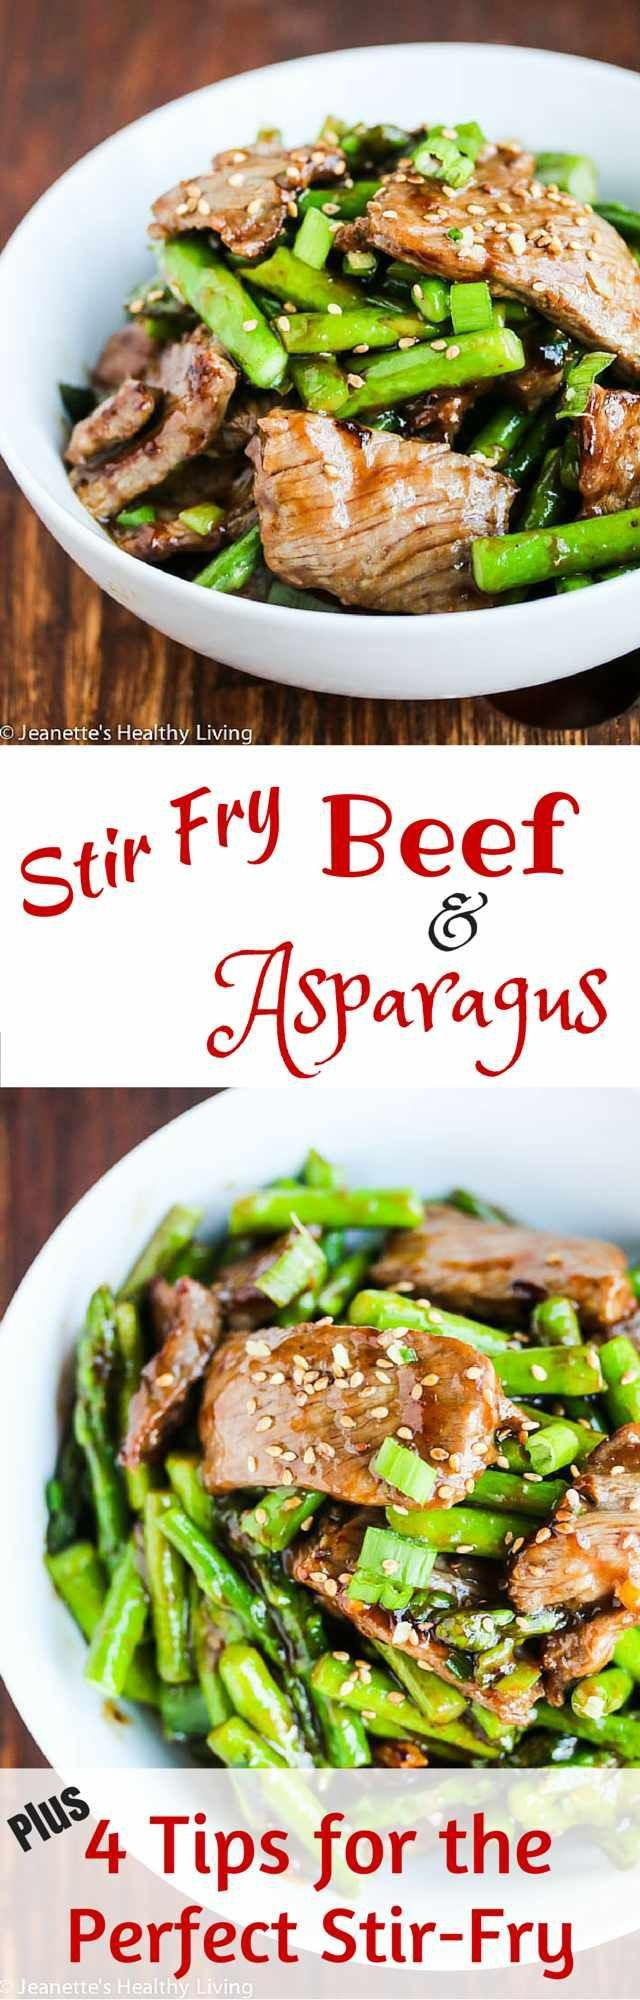 Stir Fry Beef and Asparagus in Oyster Sauce